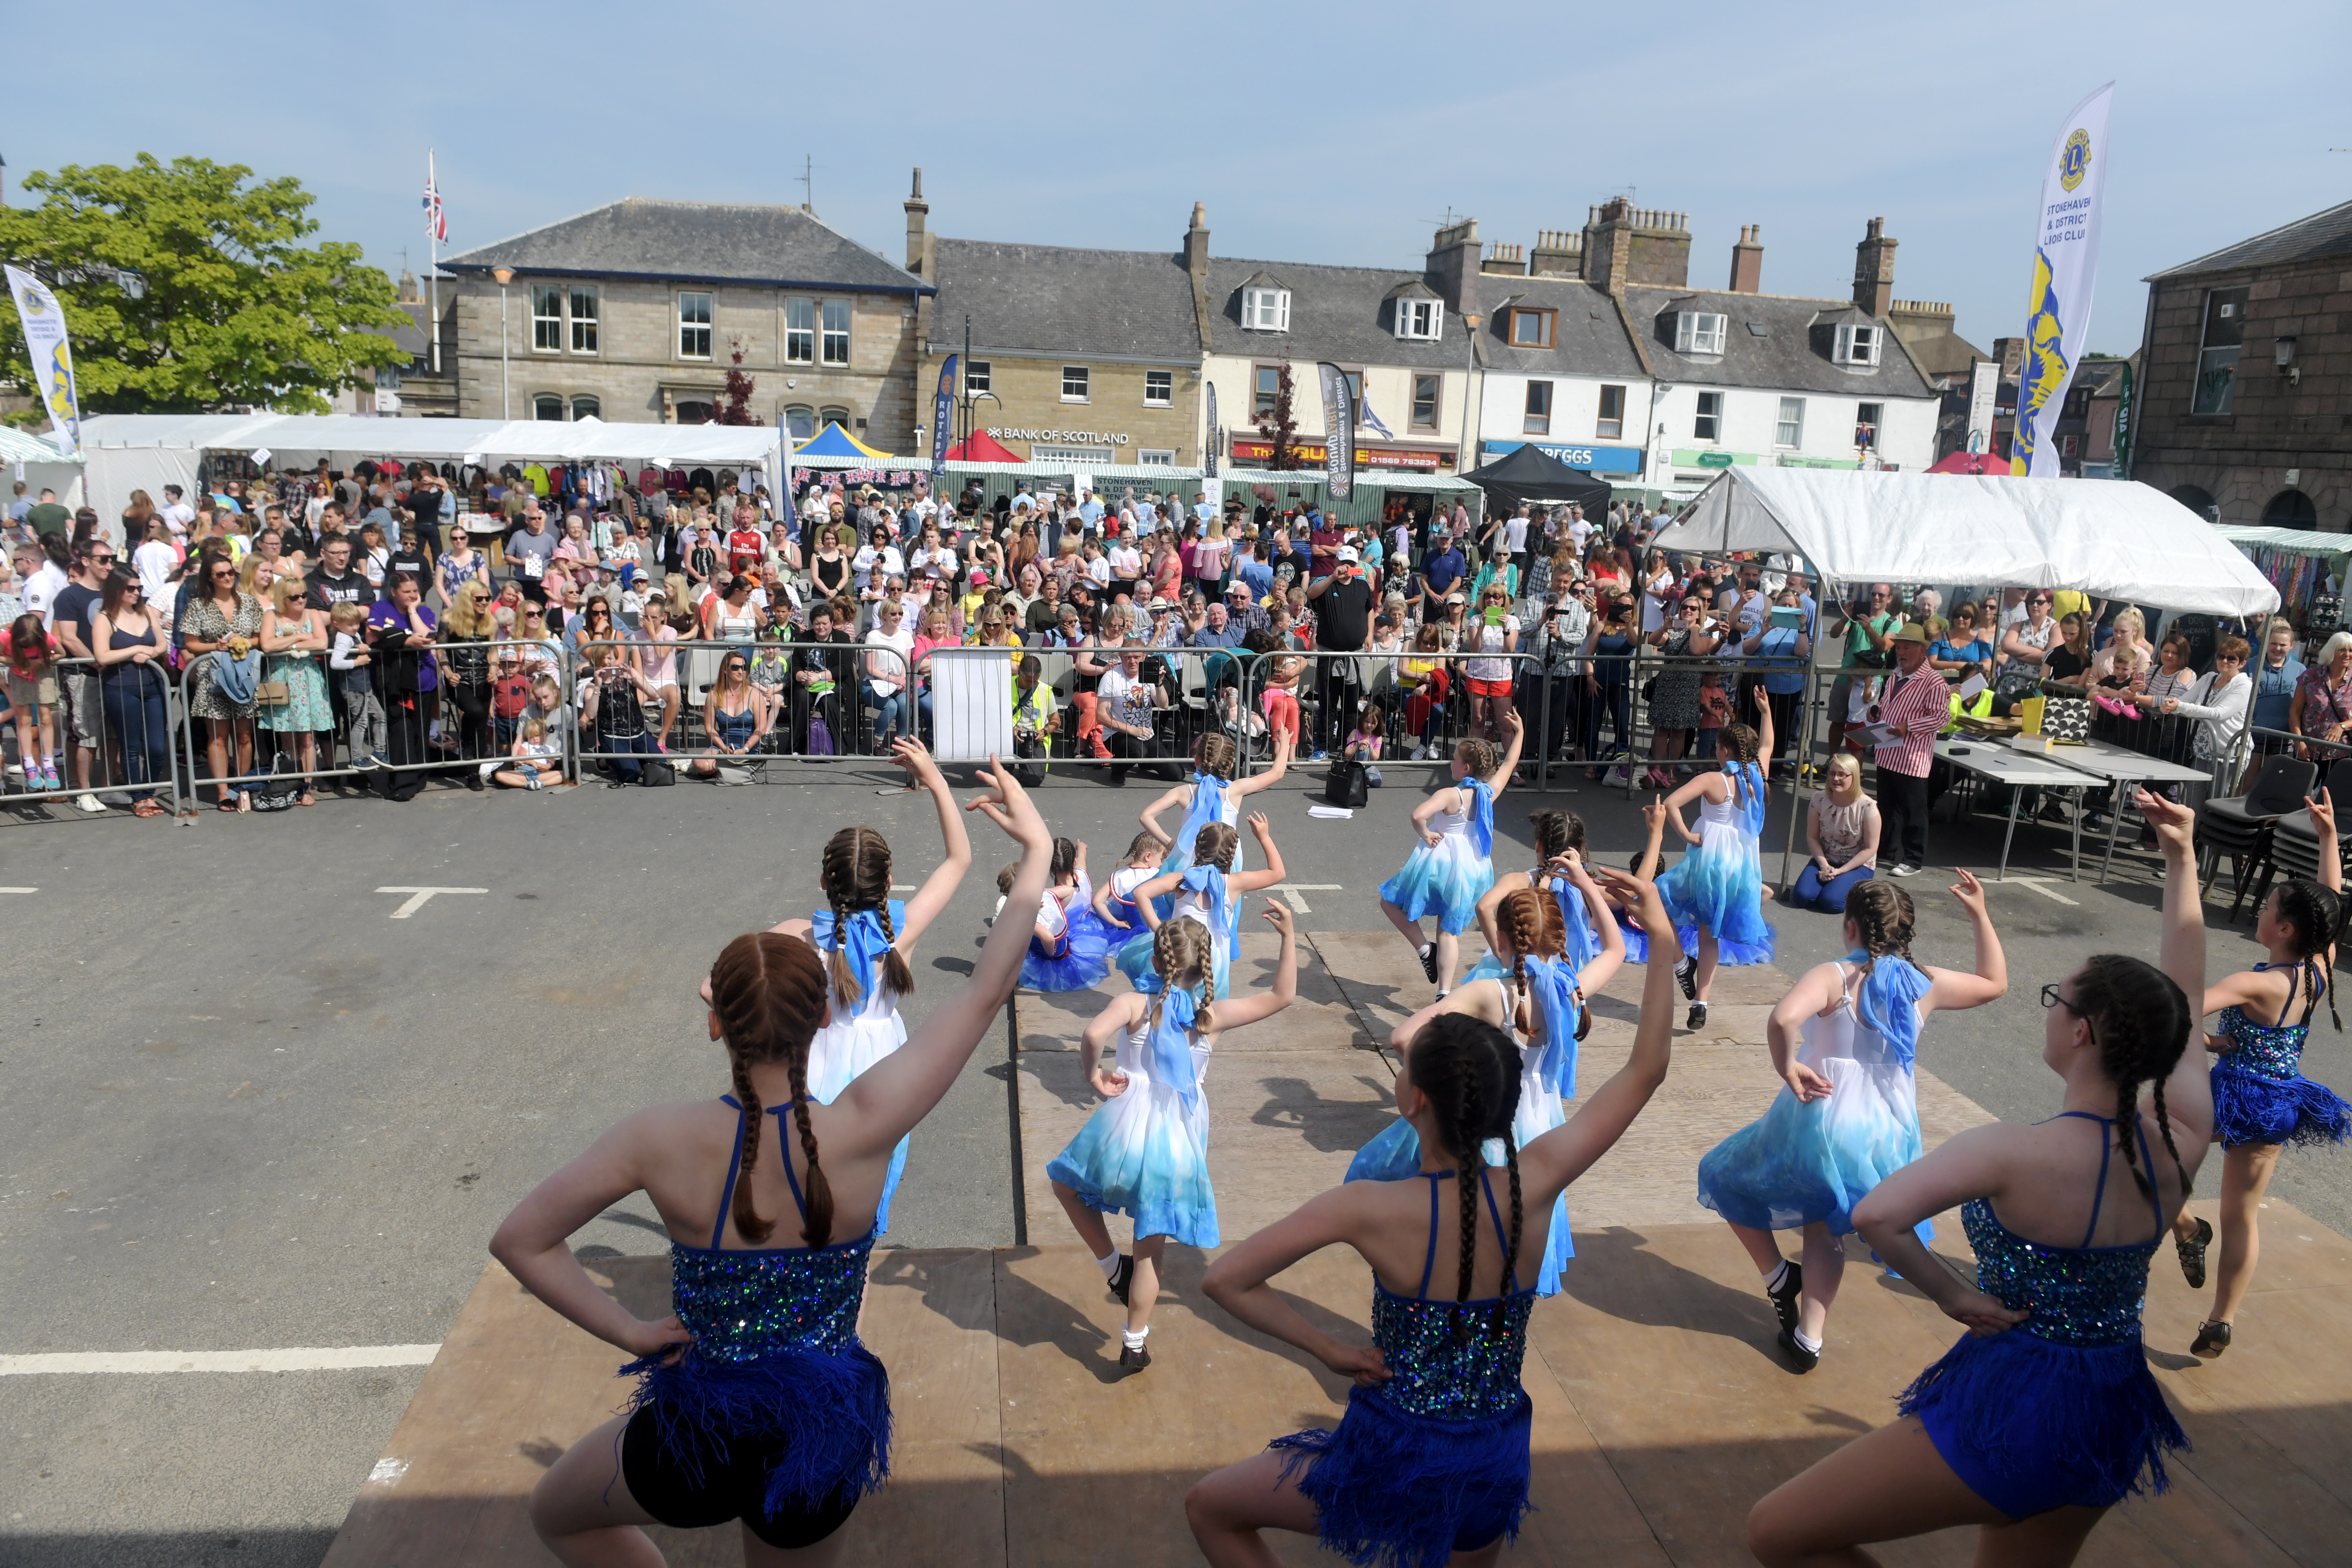 The annual Feein' Market attracts thousands to the town.